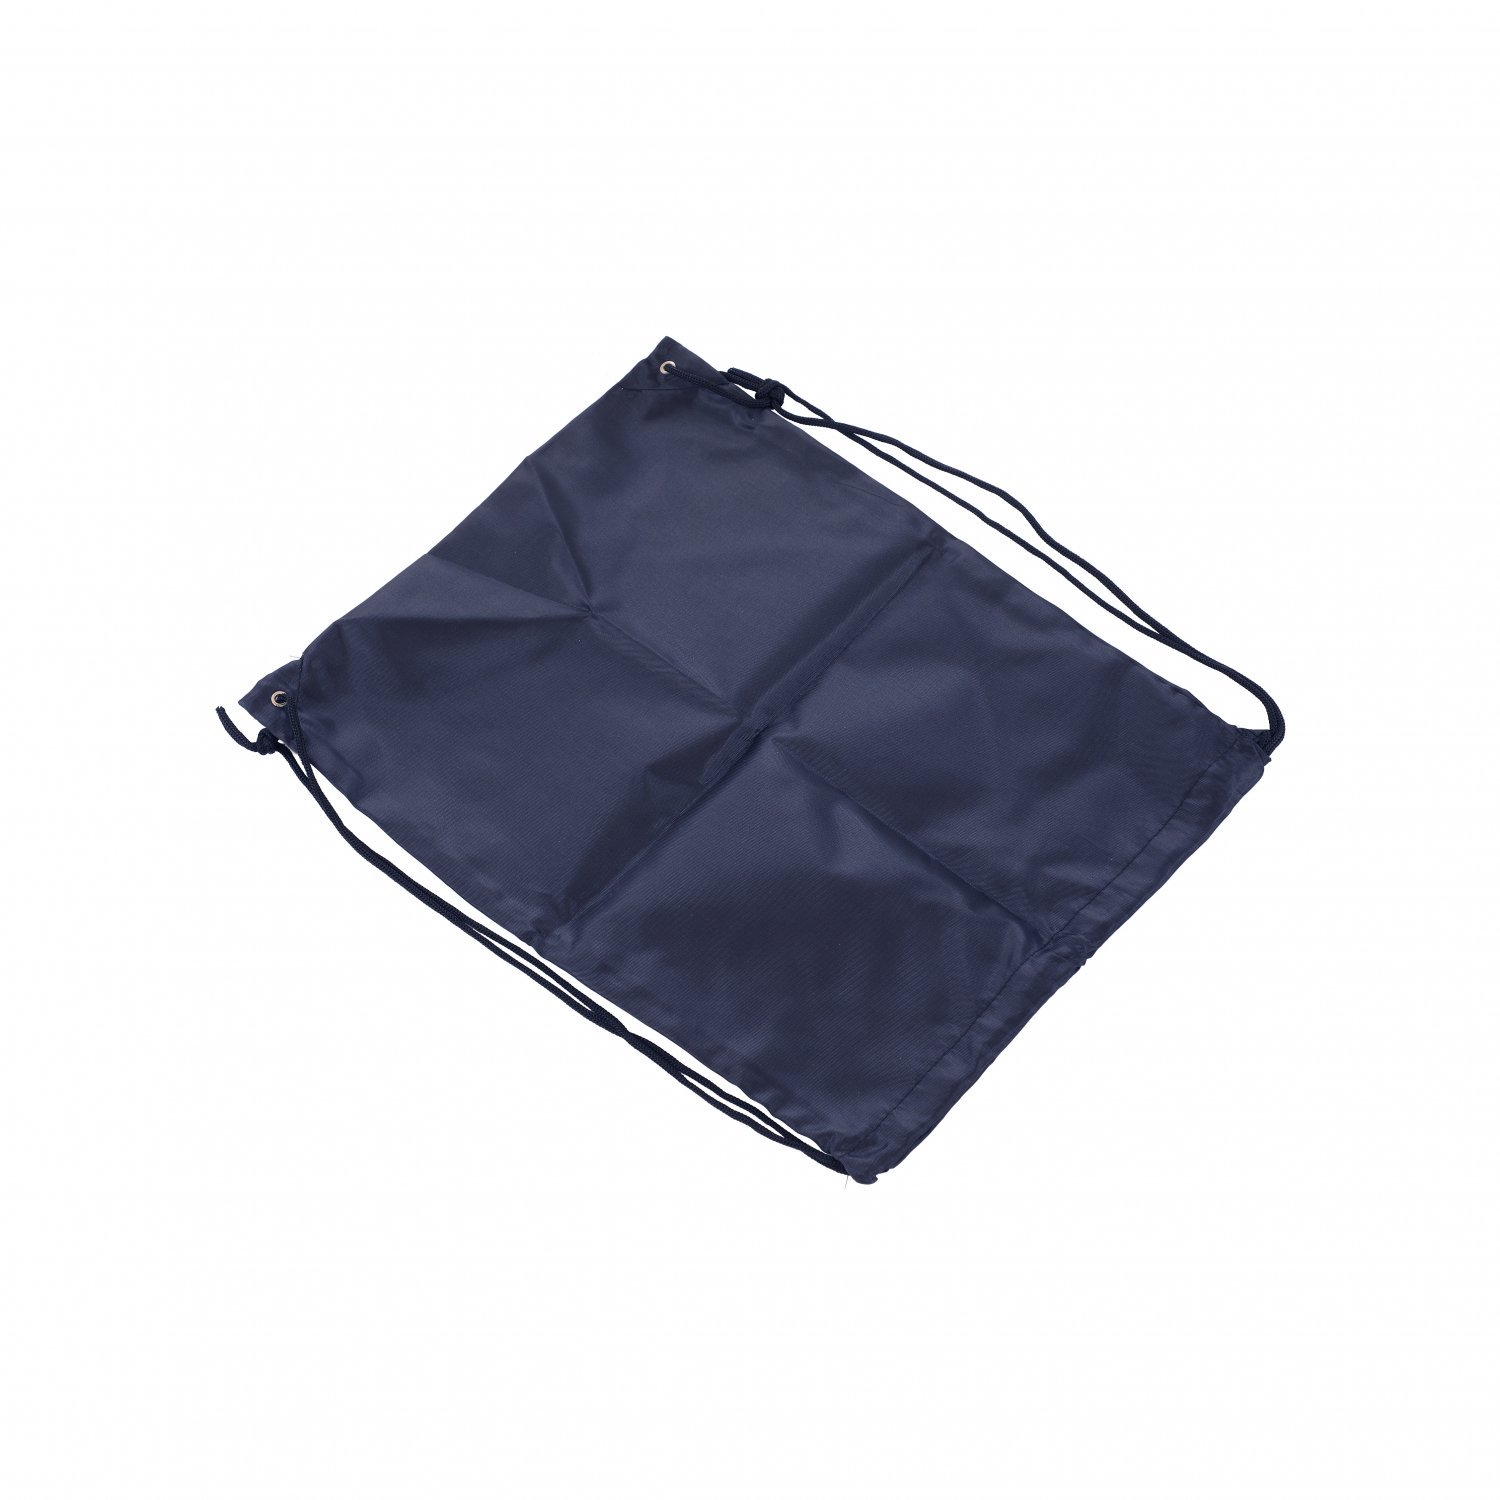 Oxford Cloth Sports PE Black Laundry Drawstring Bag